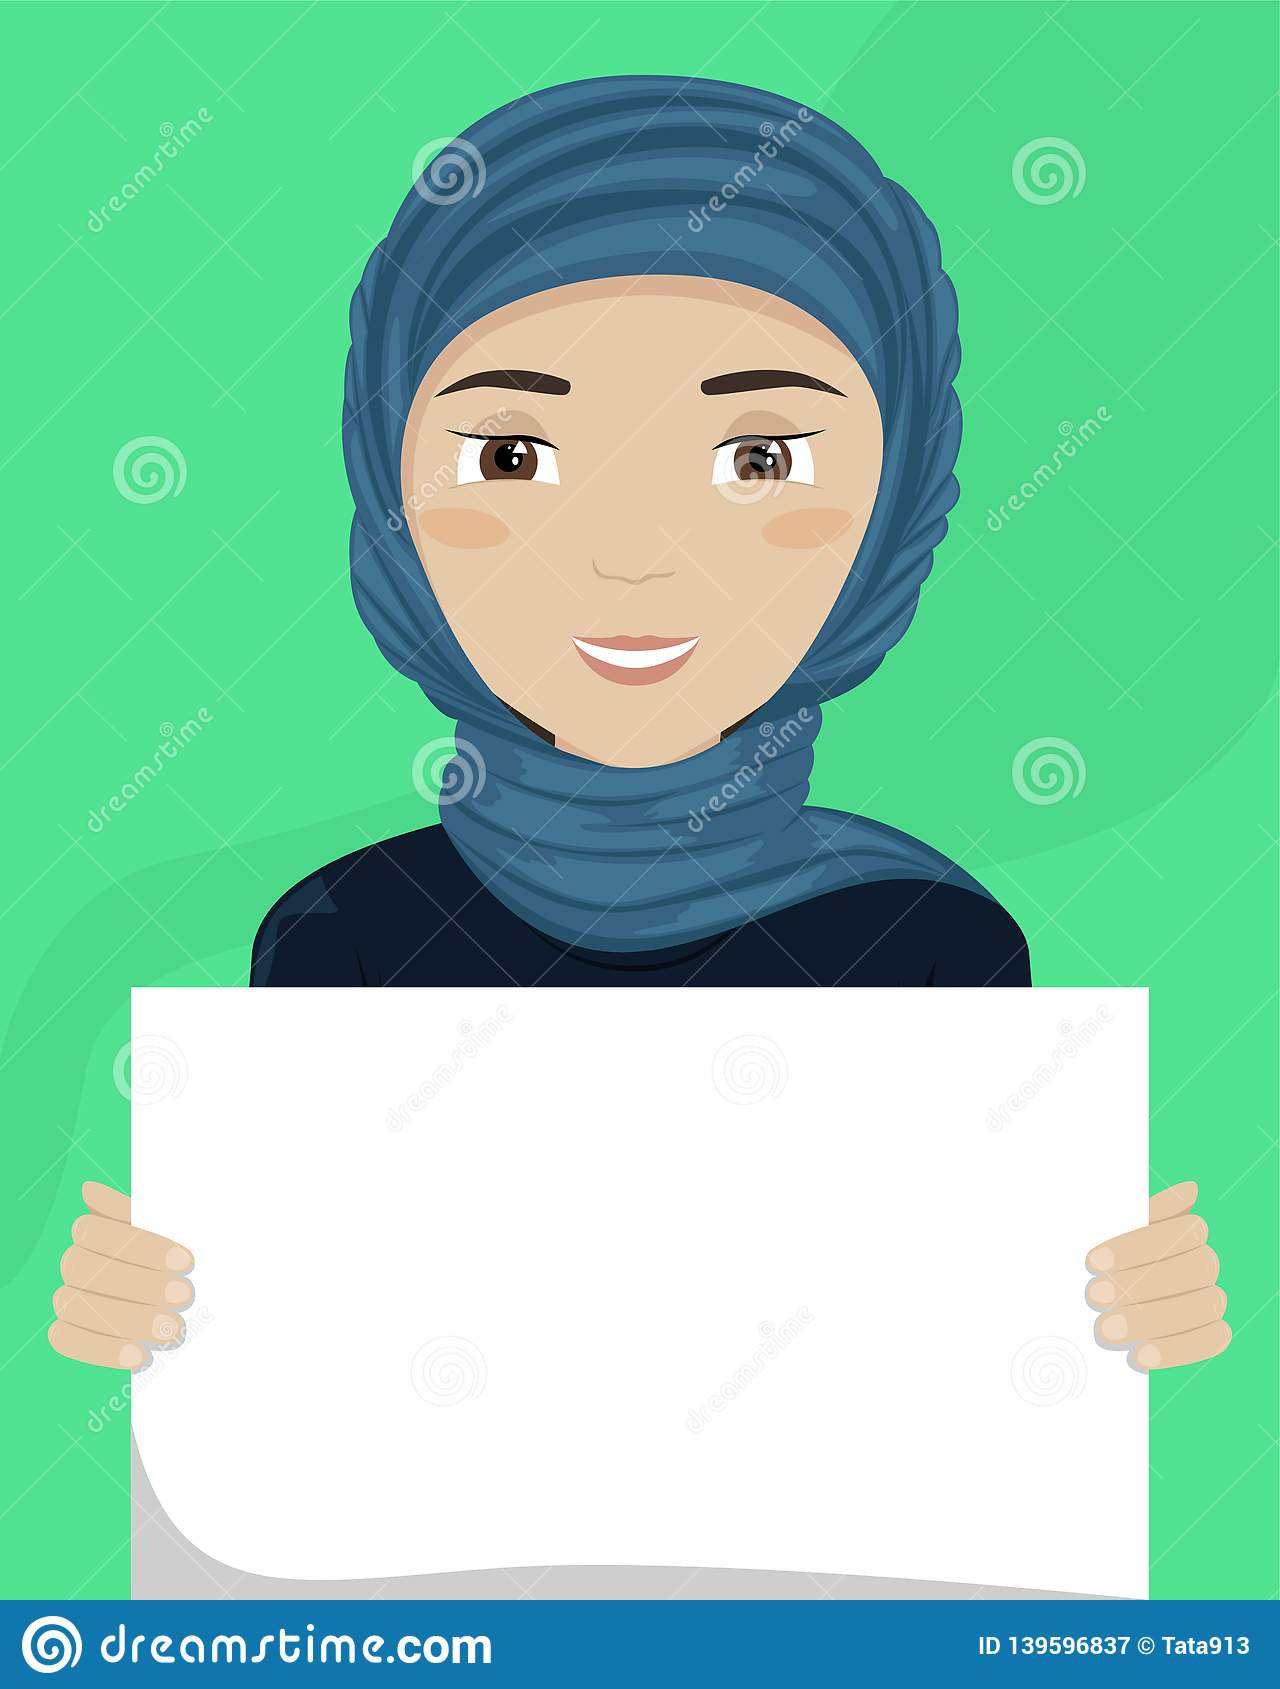 Vector flat illustration of a woman in hijab with a placard in her hands. Racial diversity